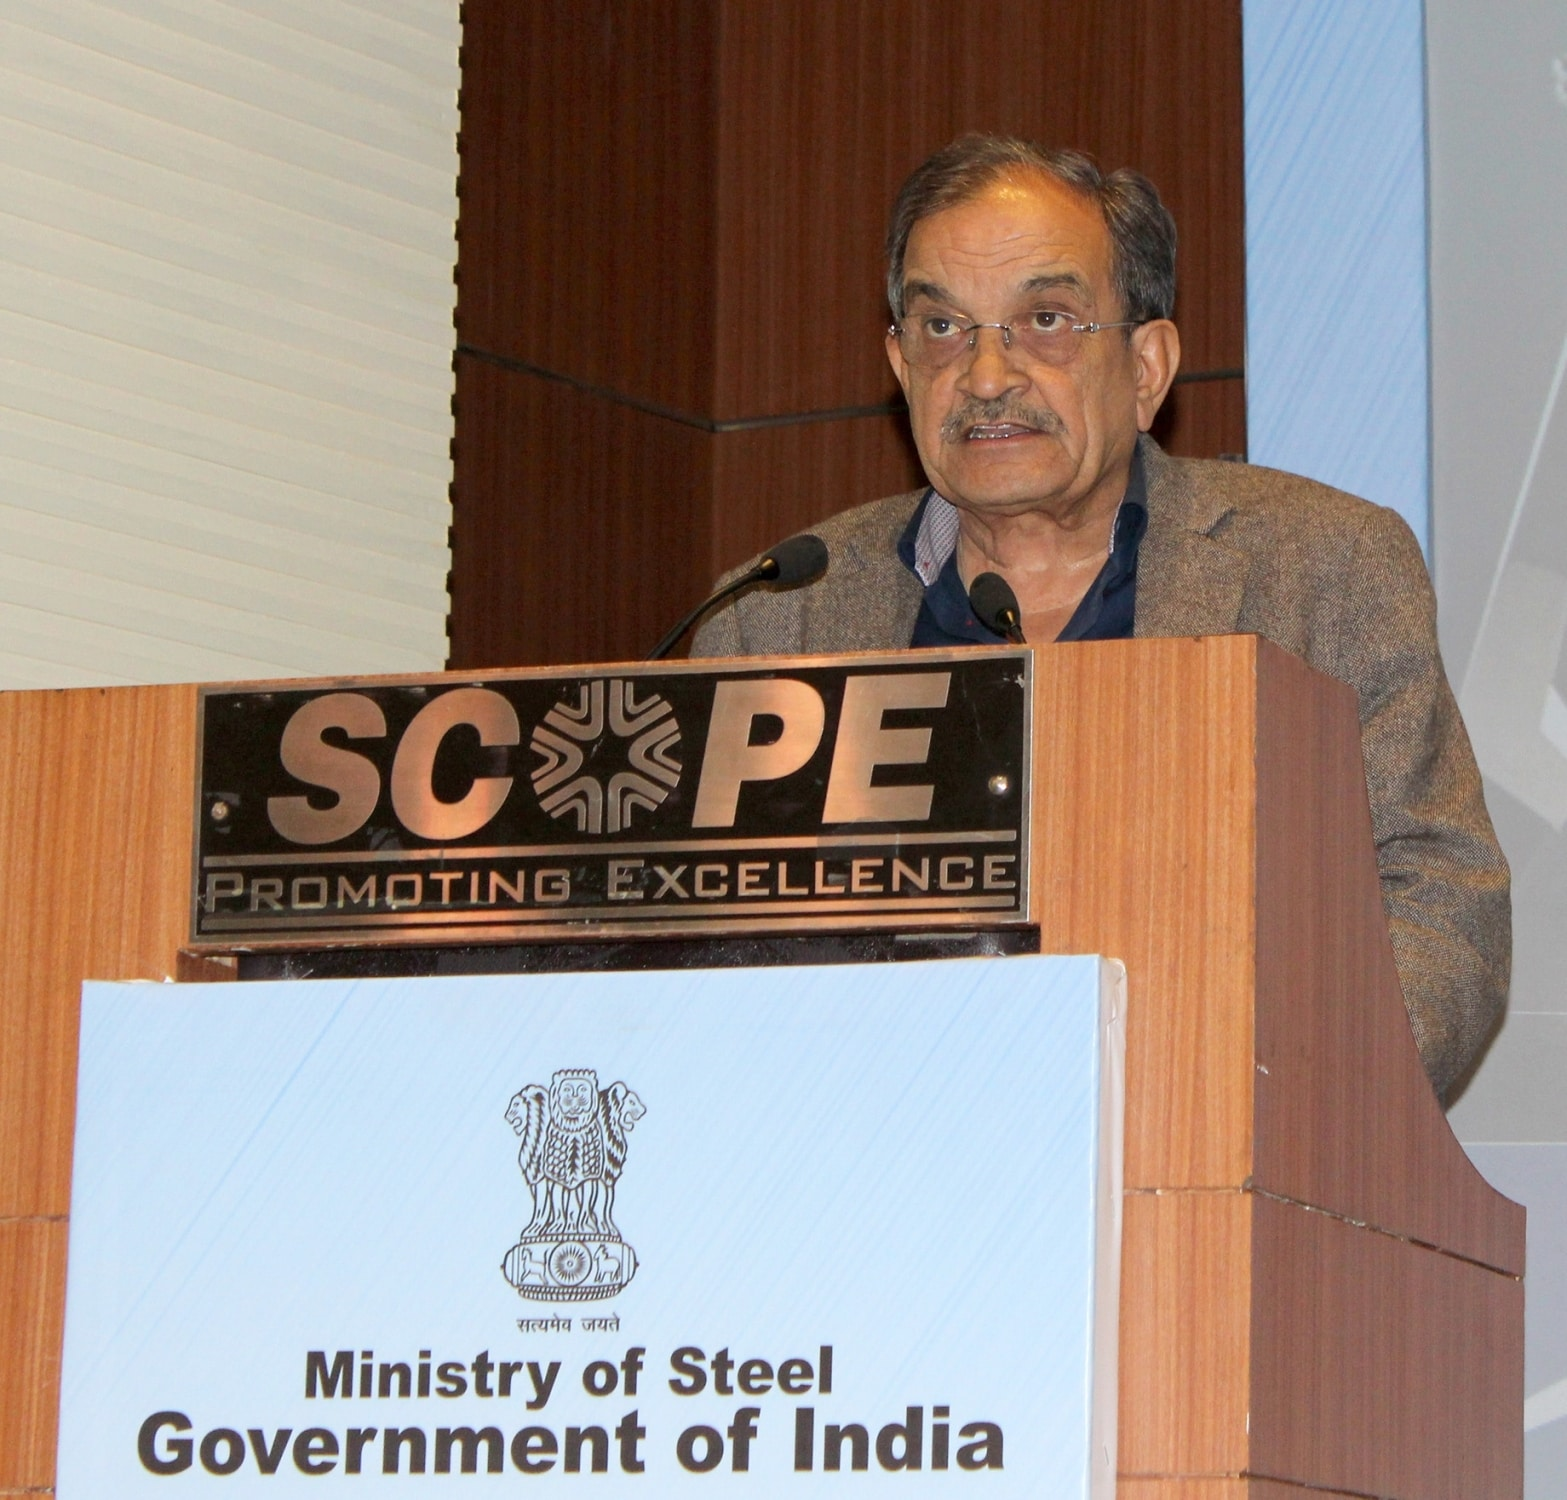 Chaudhary Birender Singh, union steel minister, in the previous government, was dropped from the new cabinet.